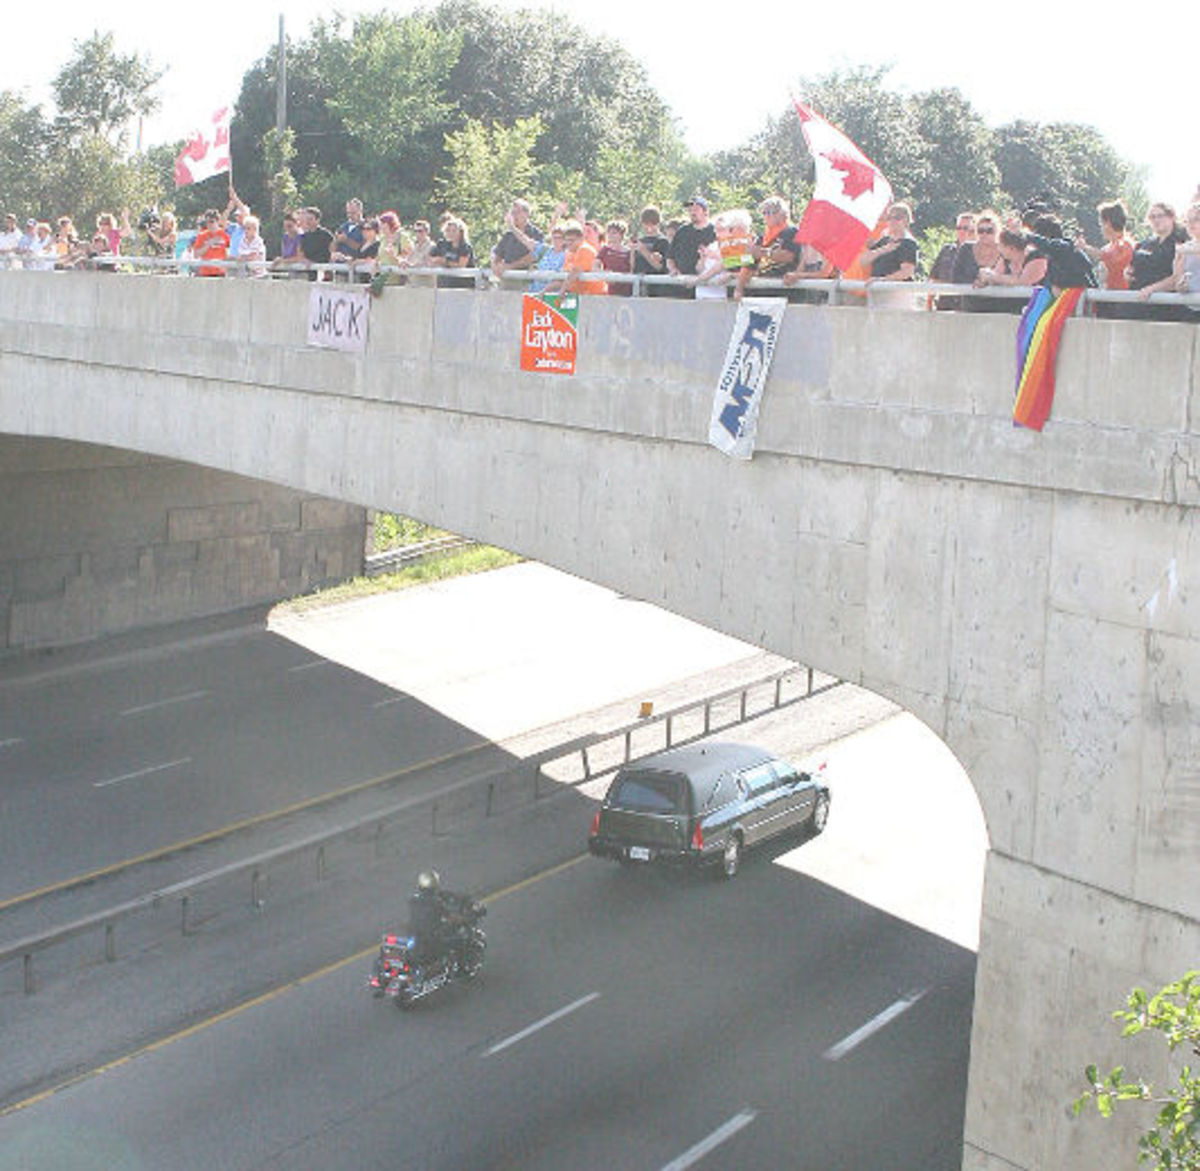 People wave Canadian flags and signs from an overpass as the hearse carrying Jack Layton's body passes along HWY 401 at Kingston, Ont., Thursday, Aug. 25, 2011.